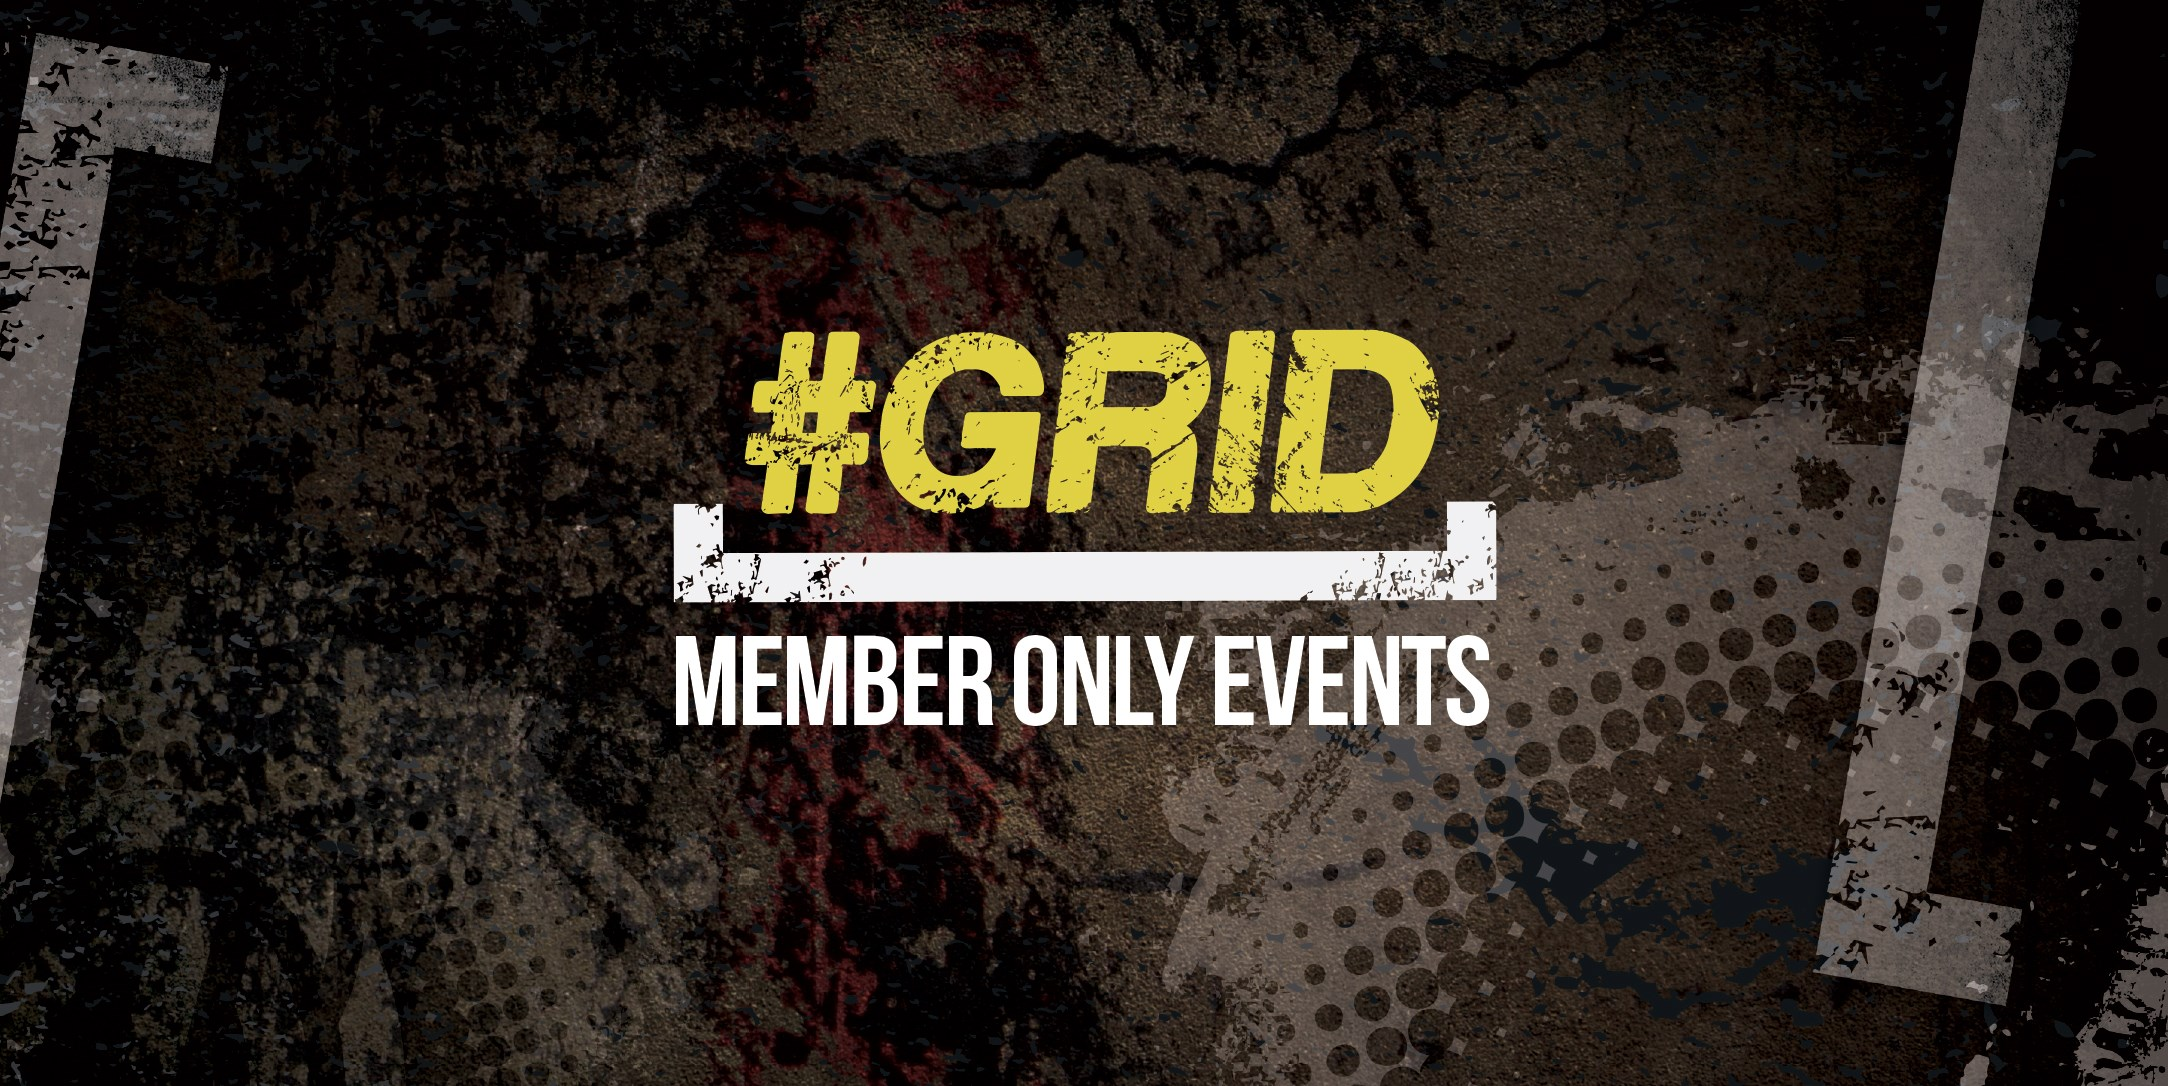 Indoor Go Karting  Events Gosport - Gosport  Member Events